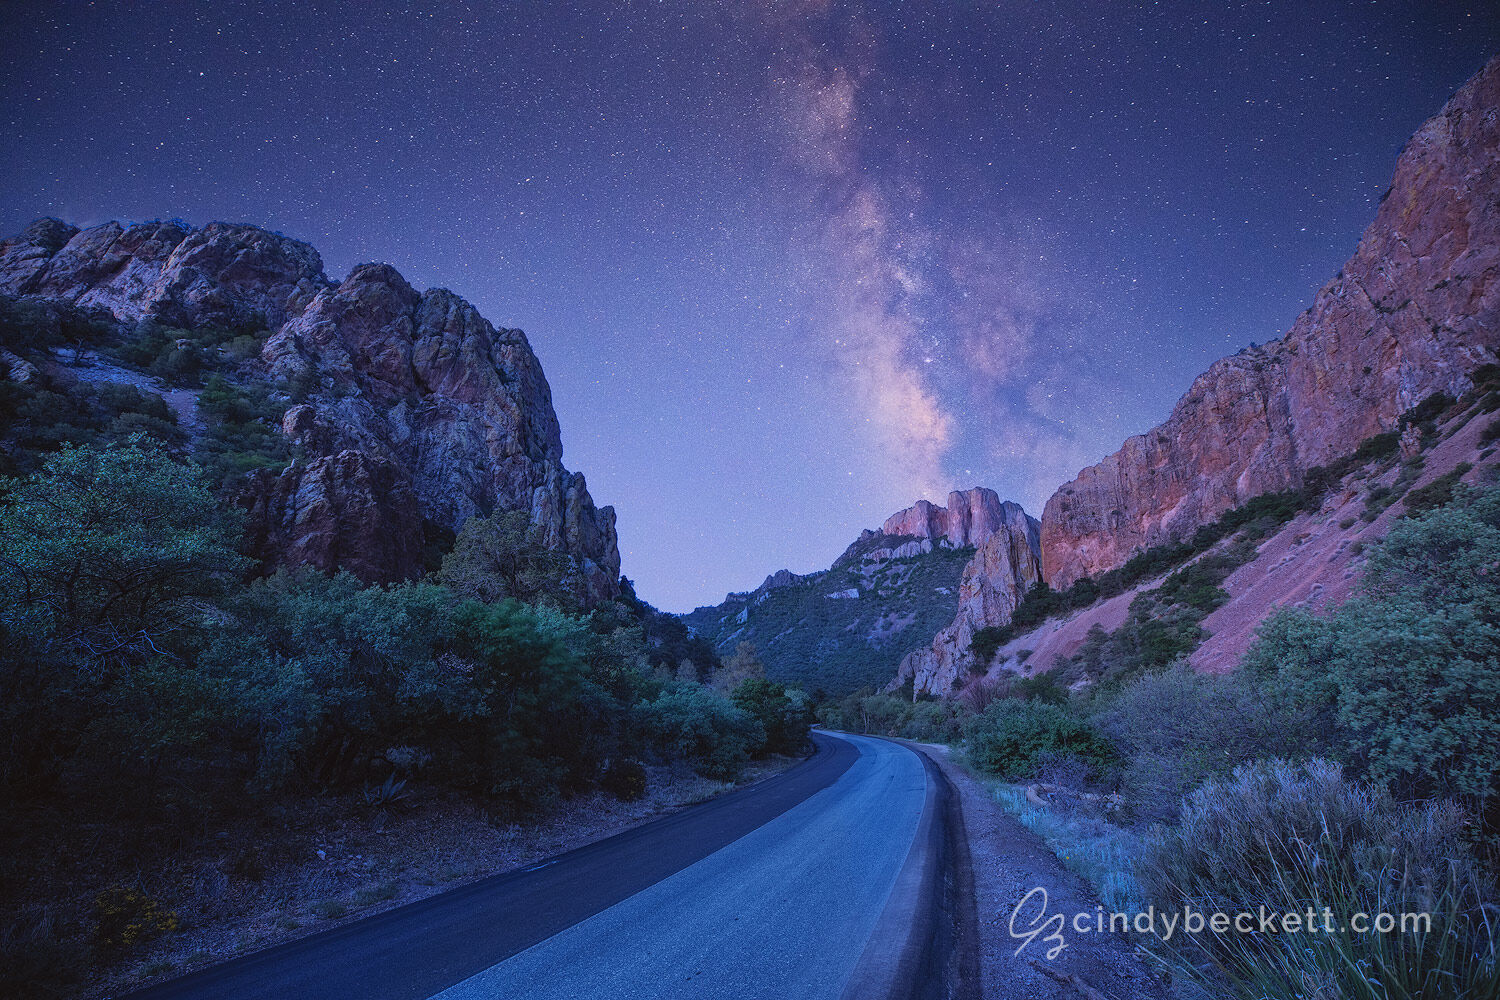 The Milky Way rises above the mountain peaks and canyon walls of the road leading into Chisos Basin in Big Bend National Park.